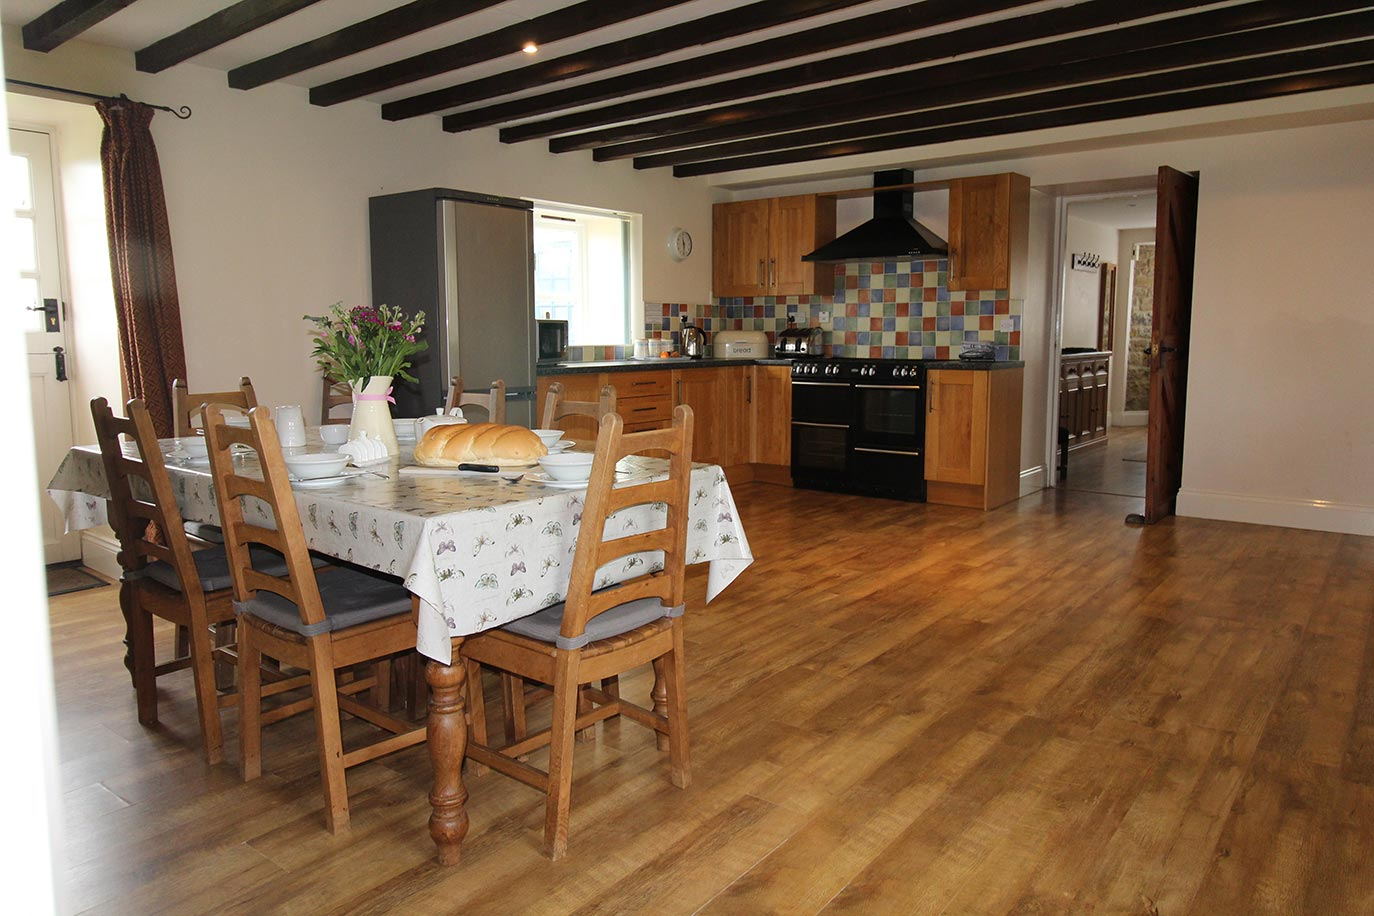 Jacobswell House kitchen dining area | Burradon Farm Houses & Cottages